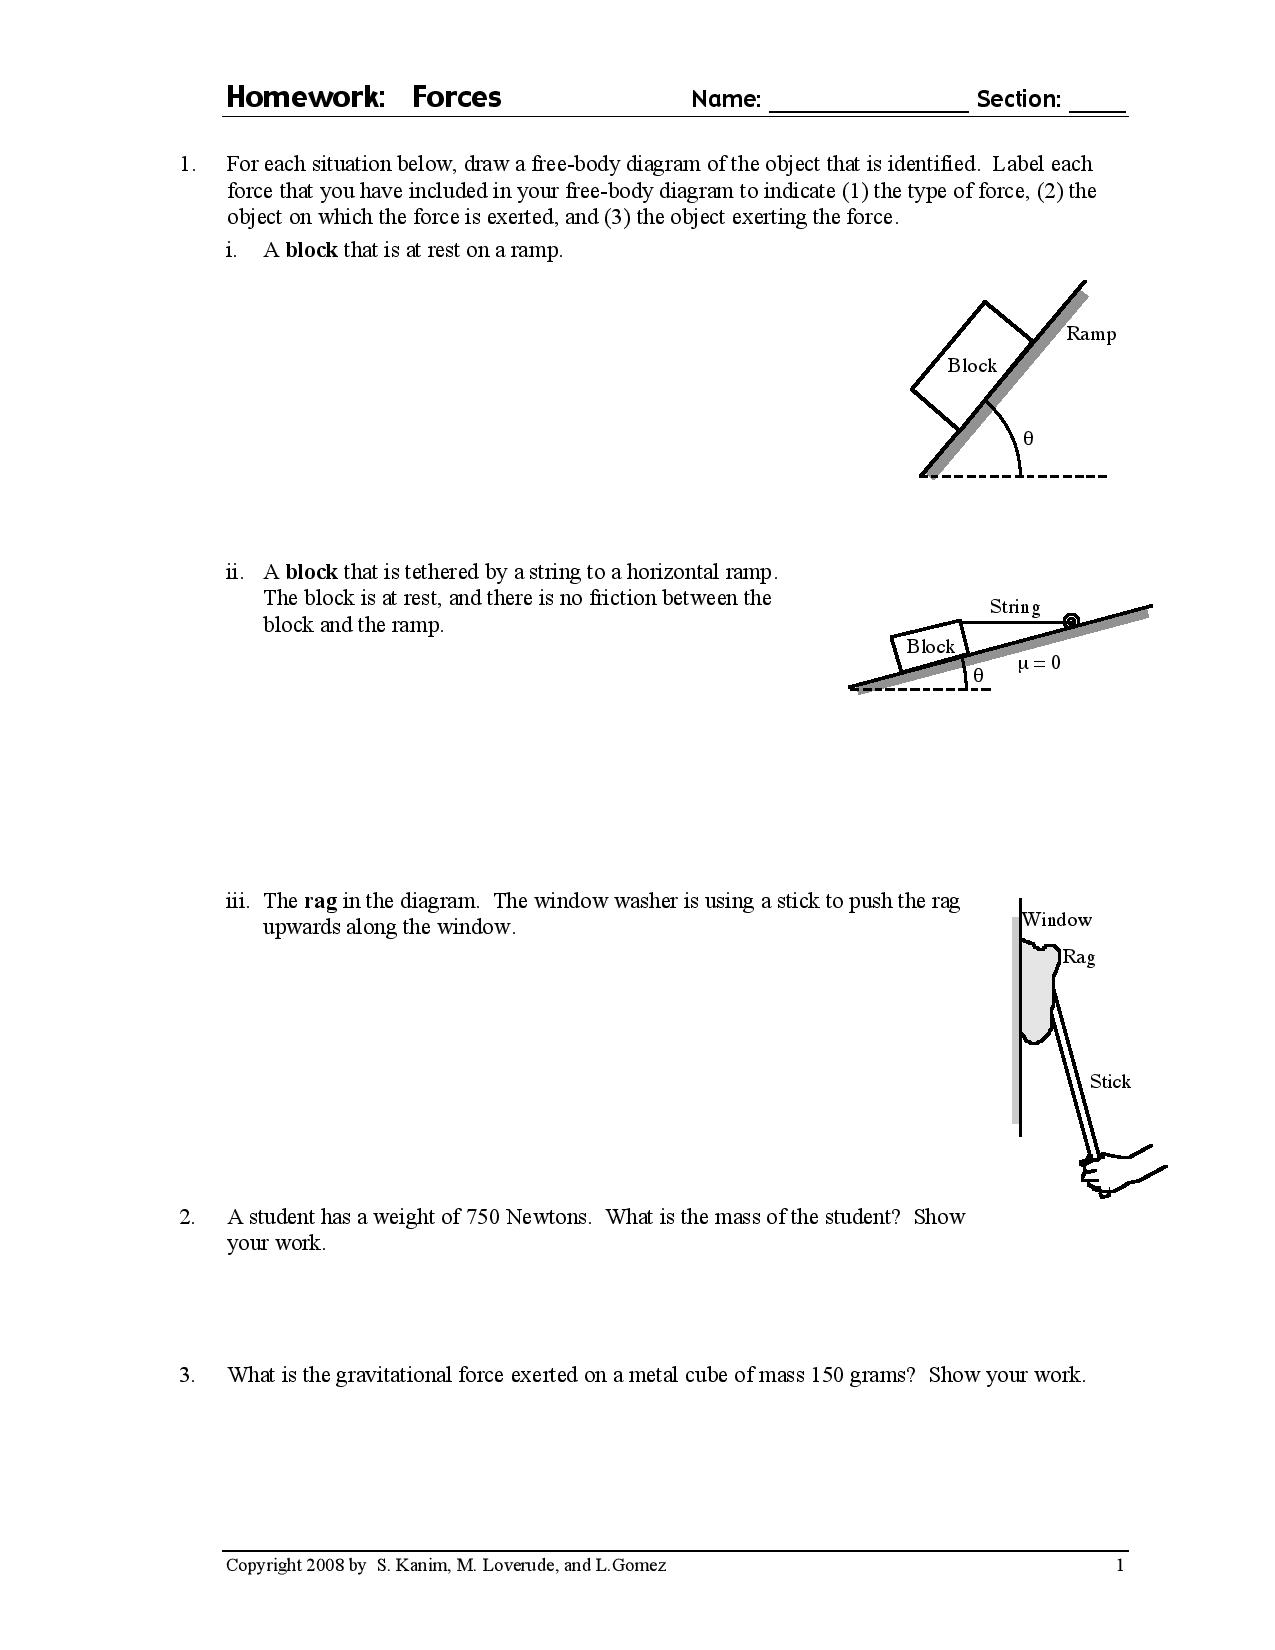 Free Body Diagrams Solved For Each Situation Below Draw A Free Body Diagram